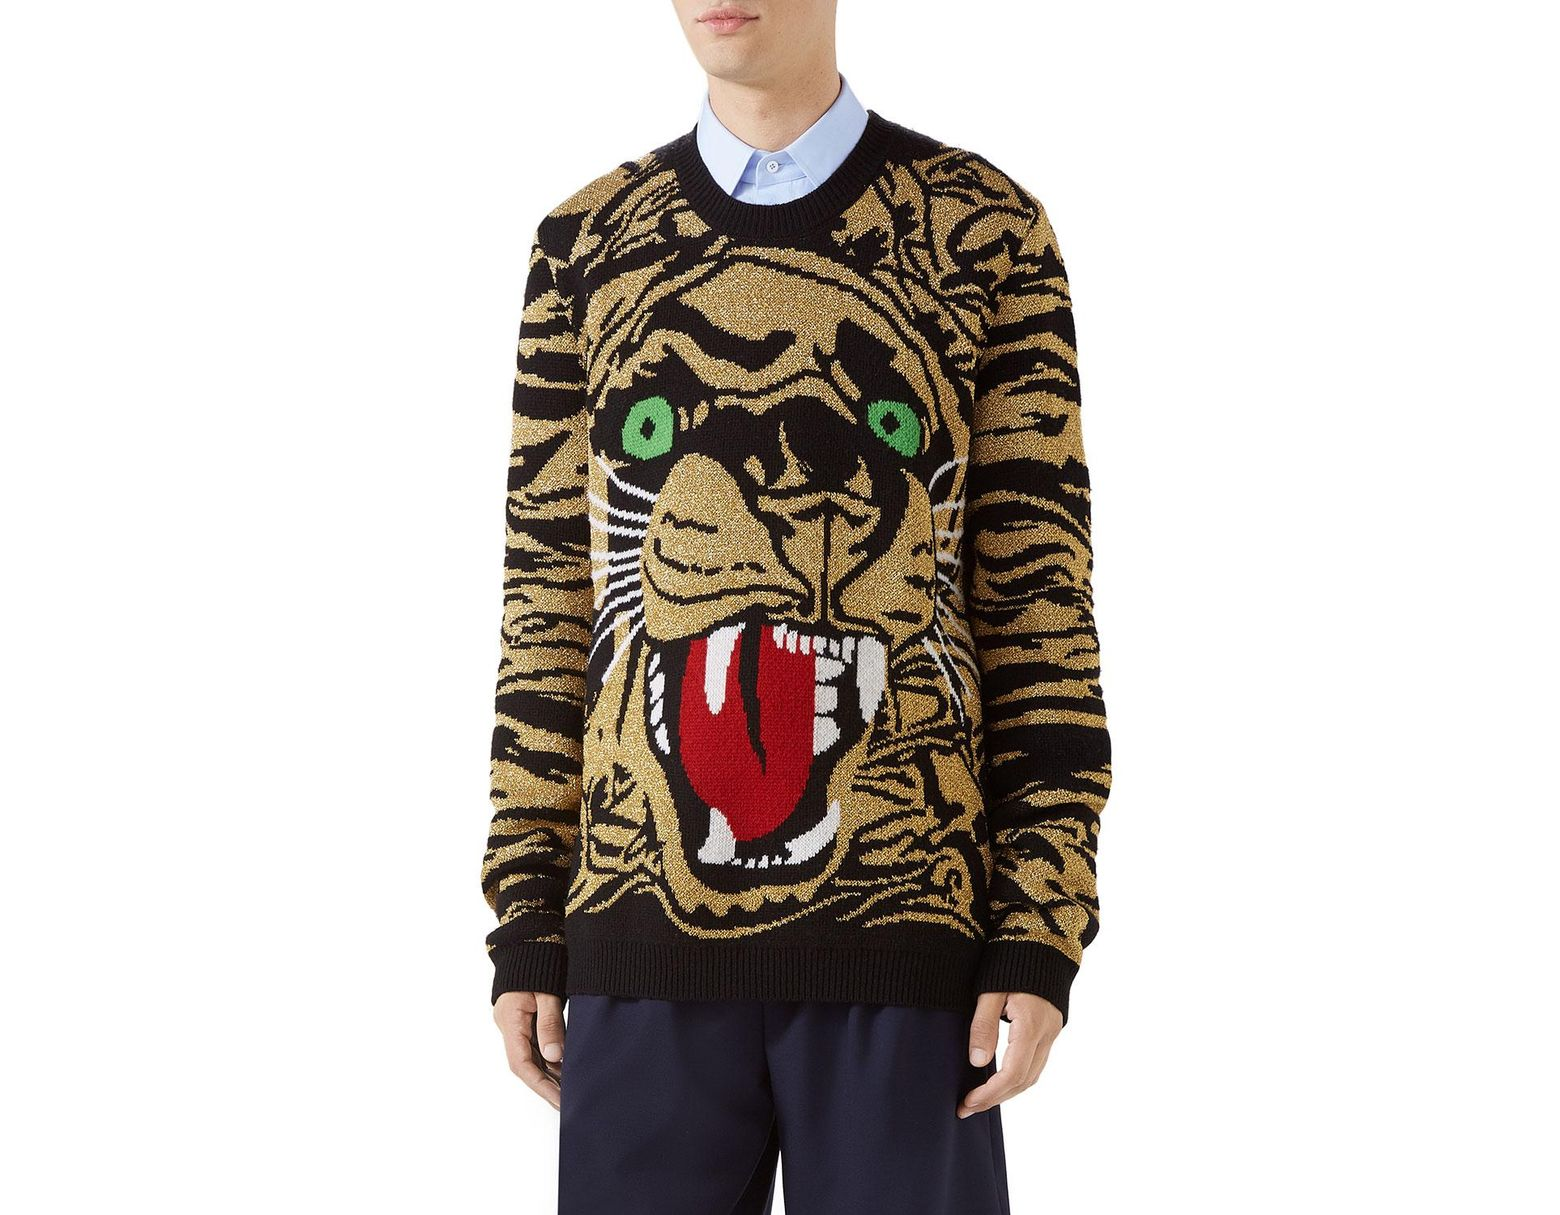 63bcdad29 Gucci Men's Metallic Tiger Pullover Sweater in Black for Men - Lyst